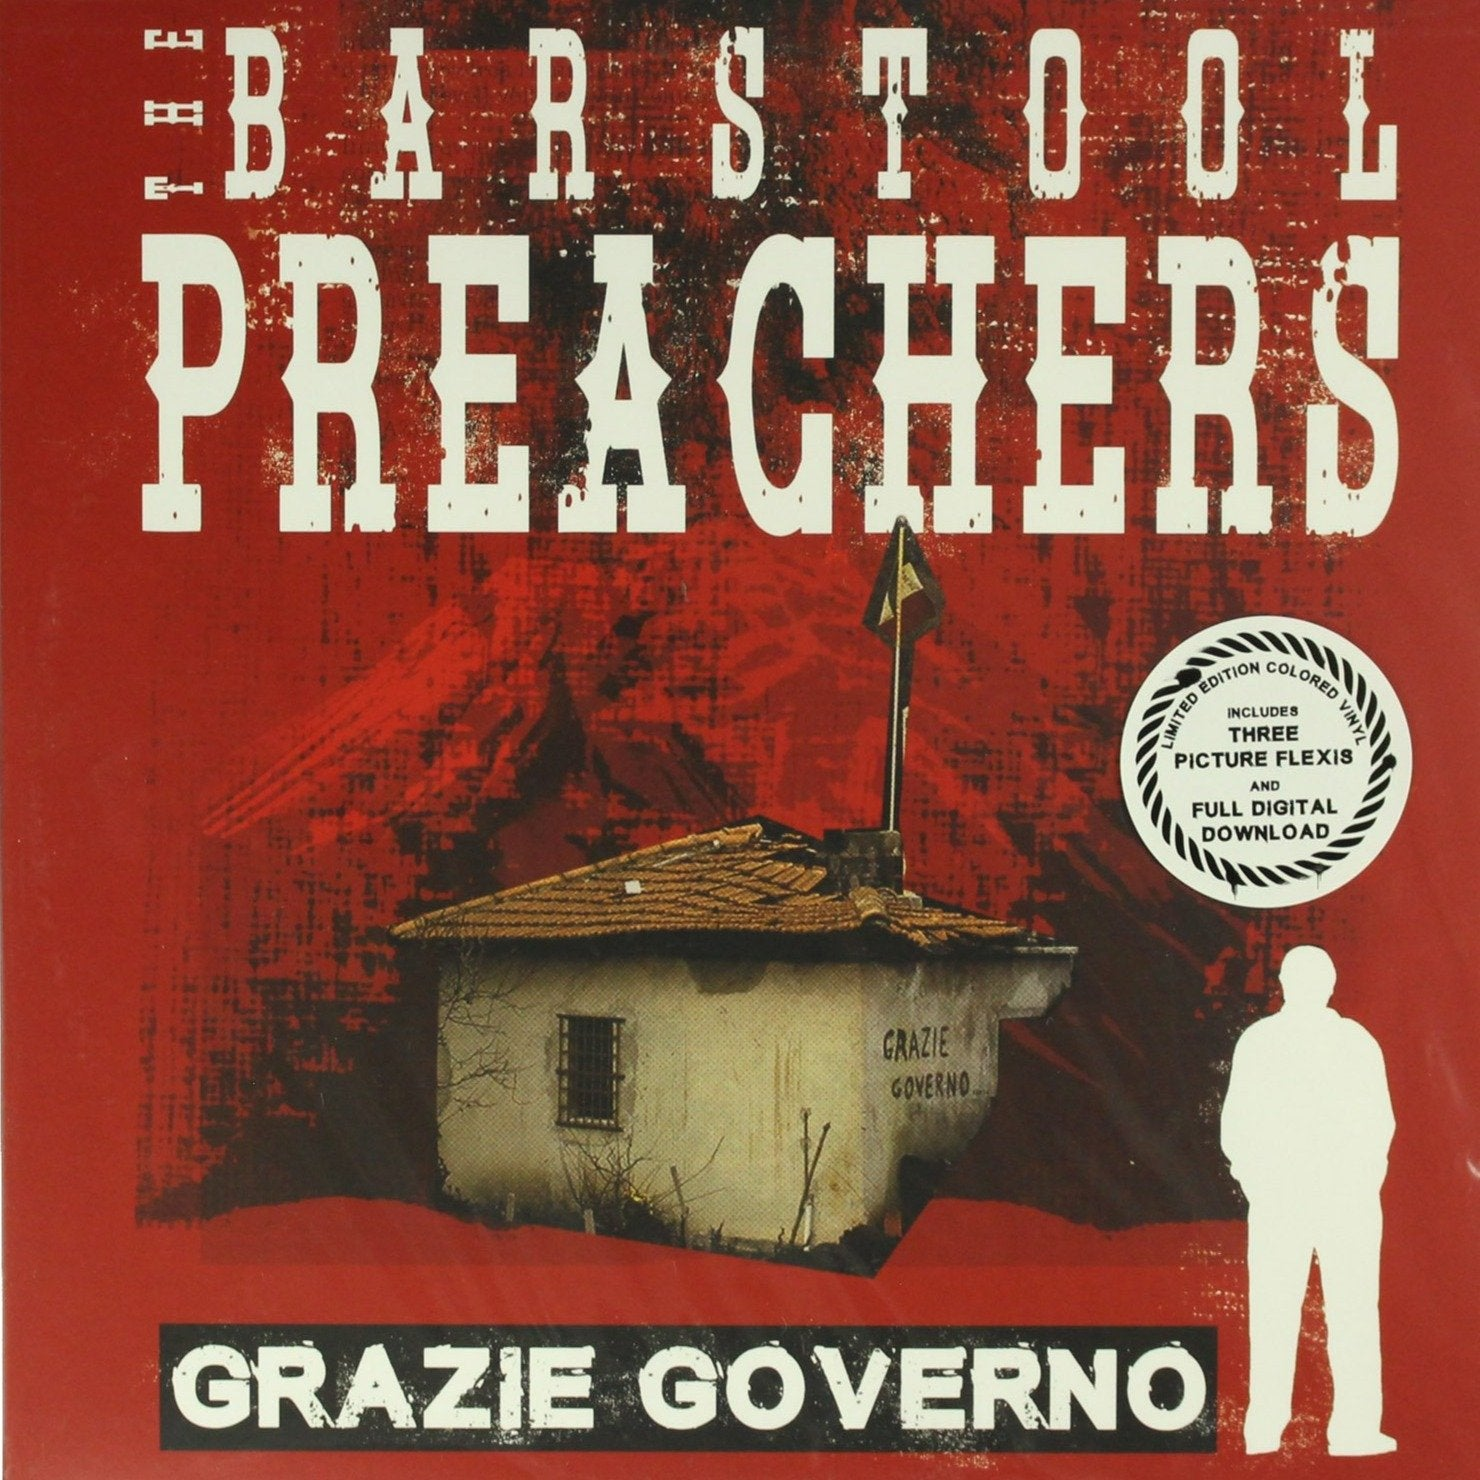 "The Bar Stool Preachers ‎– Grazie Governo 12"" Vinyl Record"